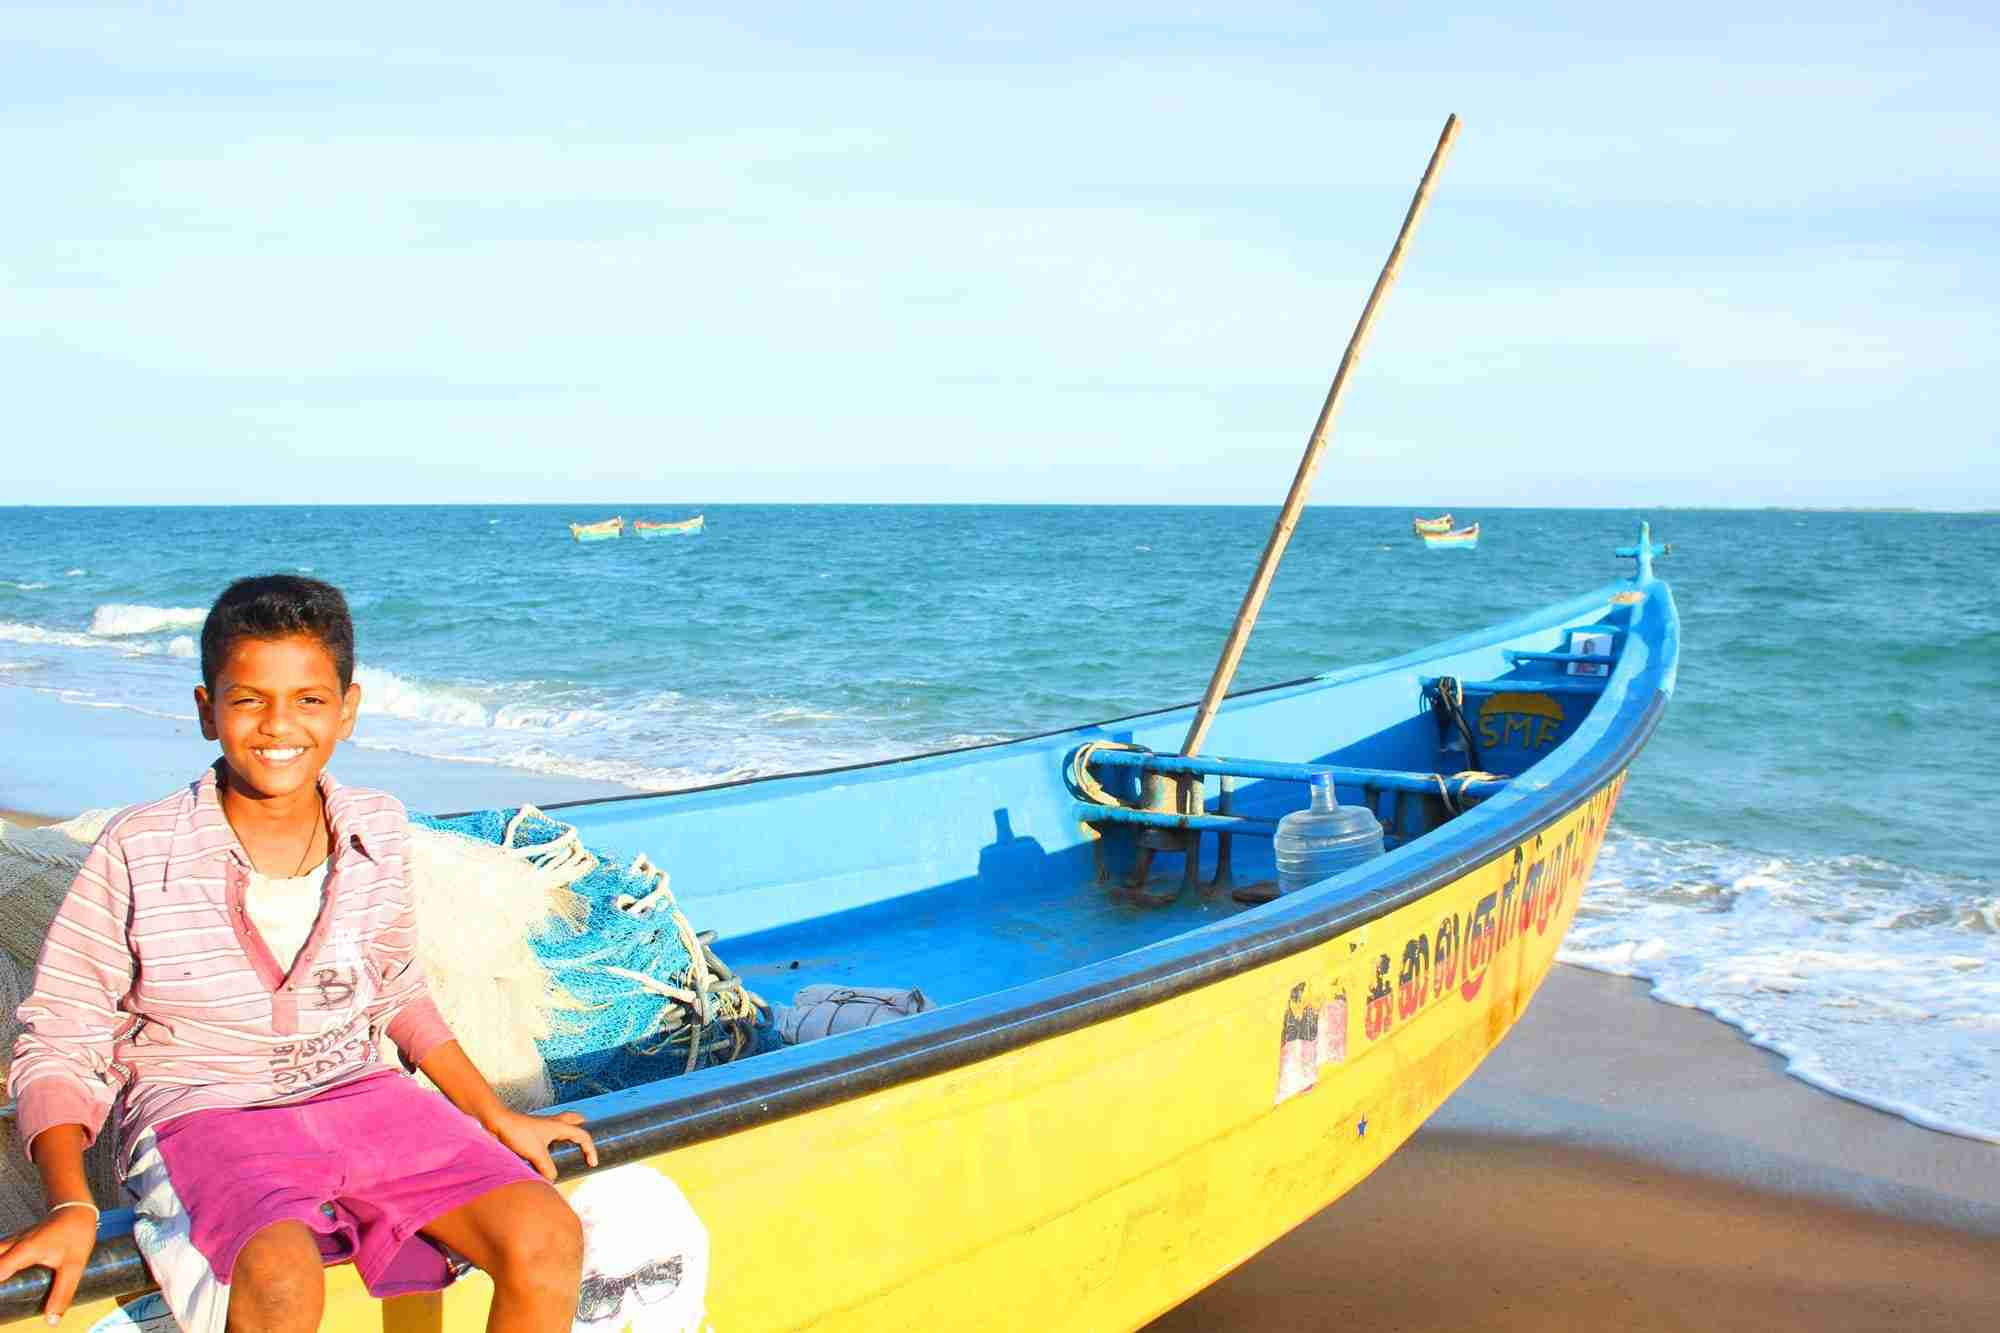 Boy sits on fishing boat near ocean